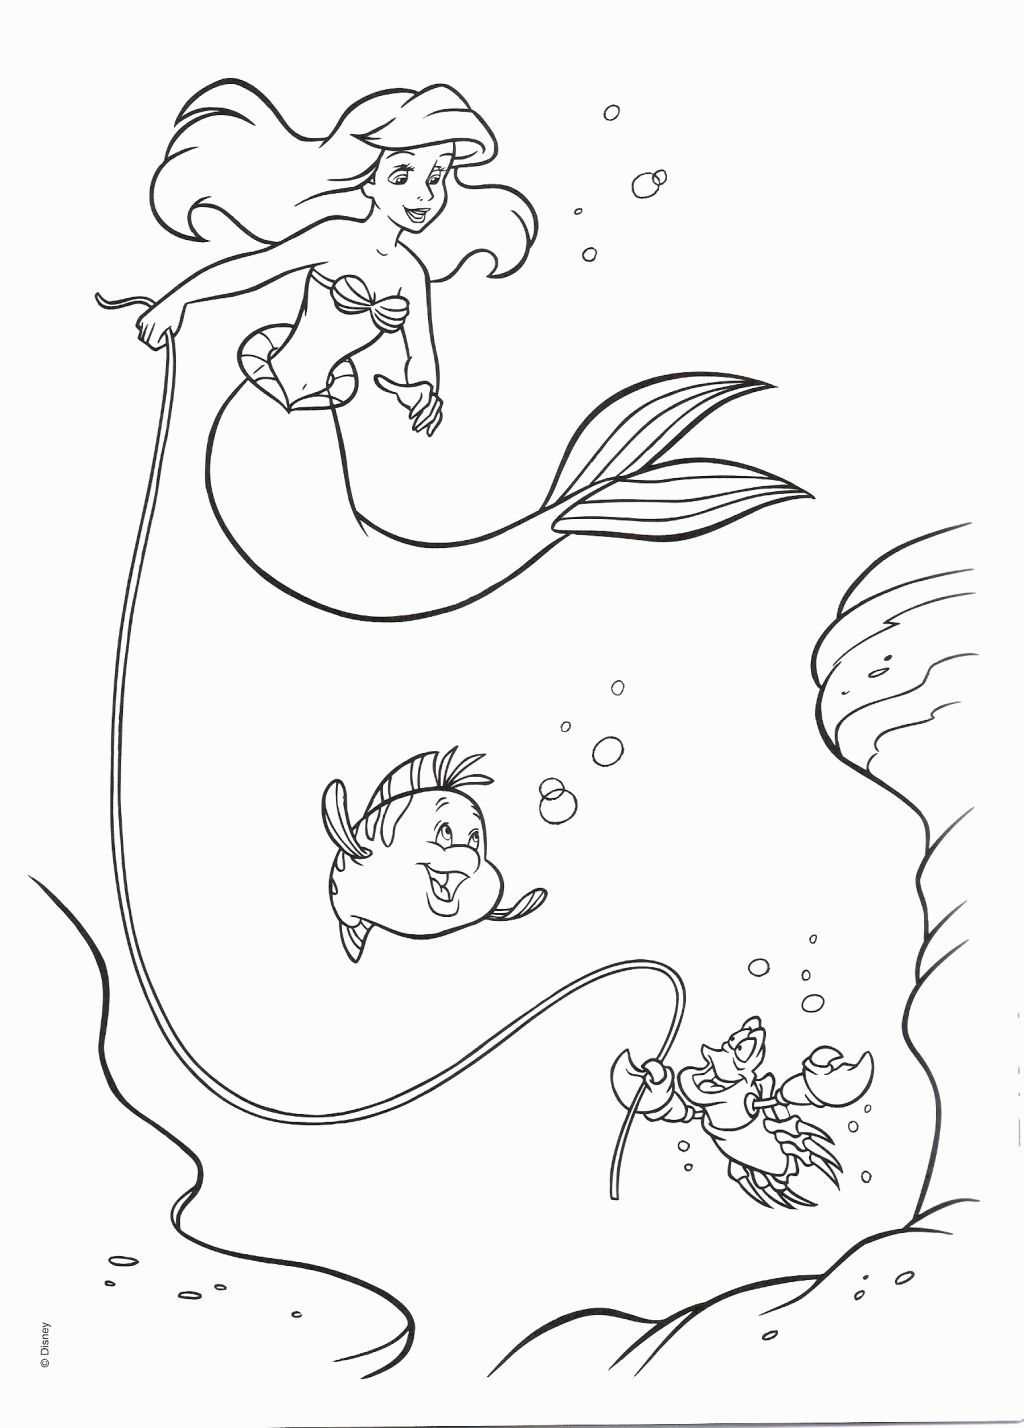 The Little Mermaid 2 Coloring Pages Ariel Coloring Pages Disney Coloring Pages Coloring Pages